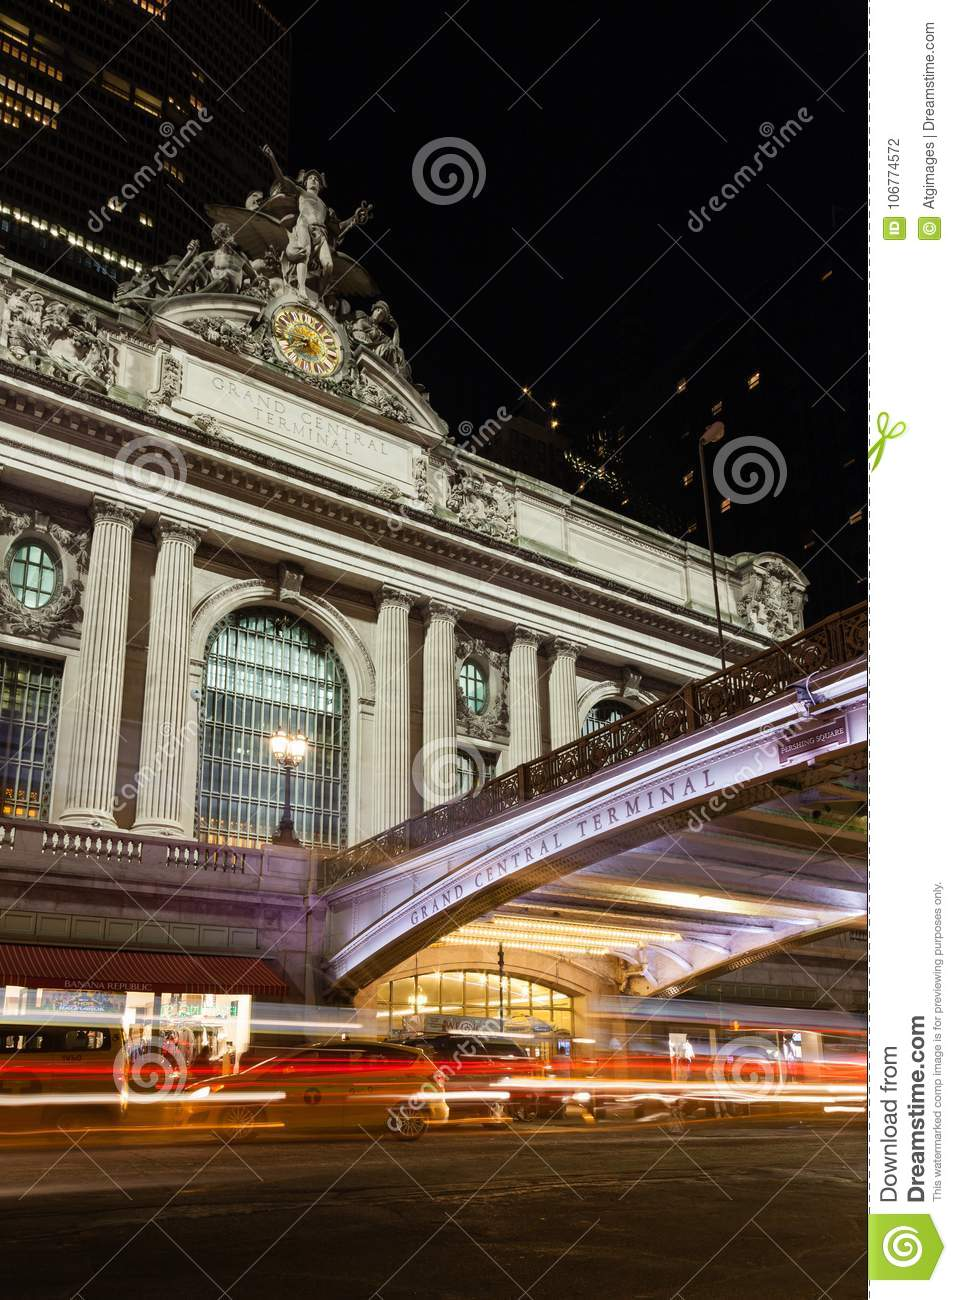 The Glory of Commerce sculpture adorns Grand Central Station